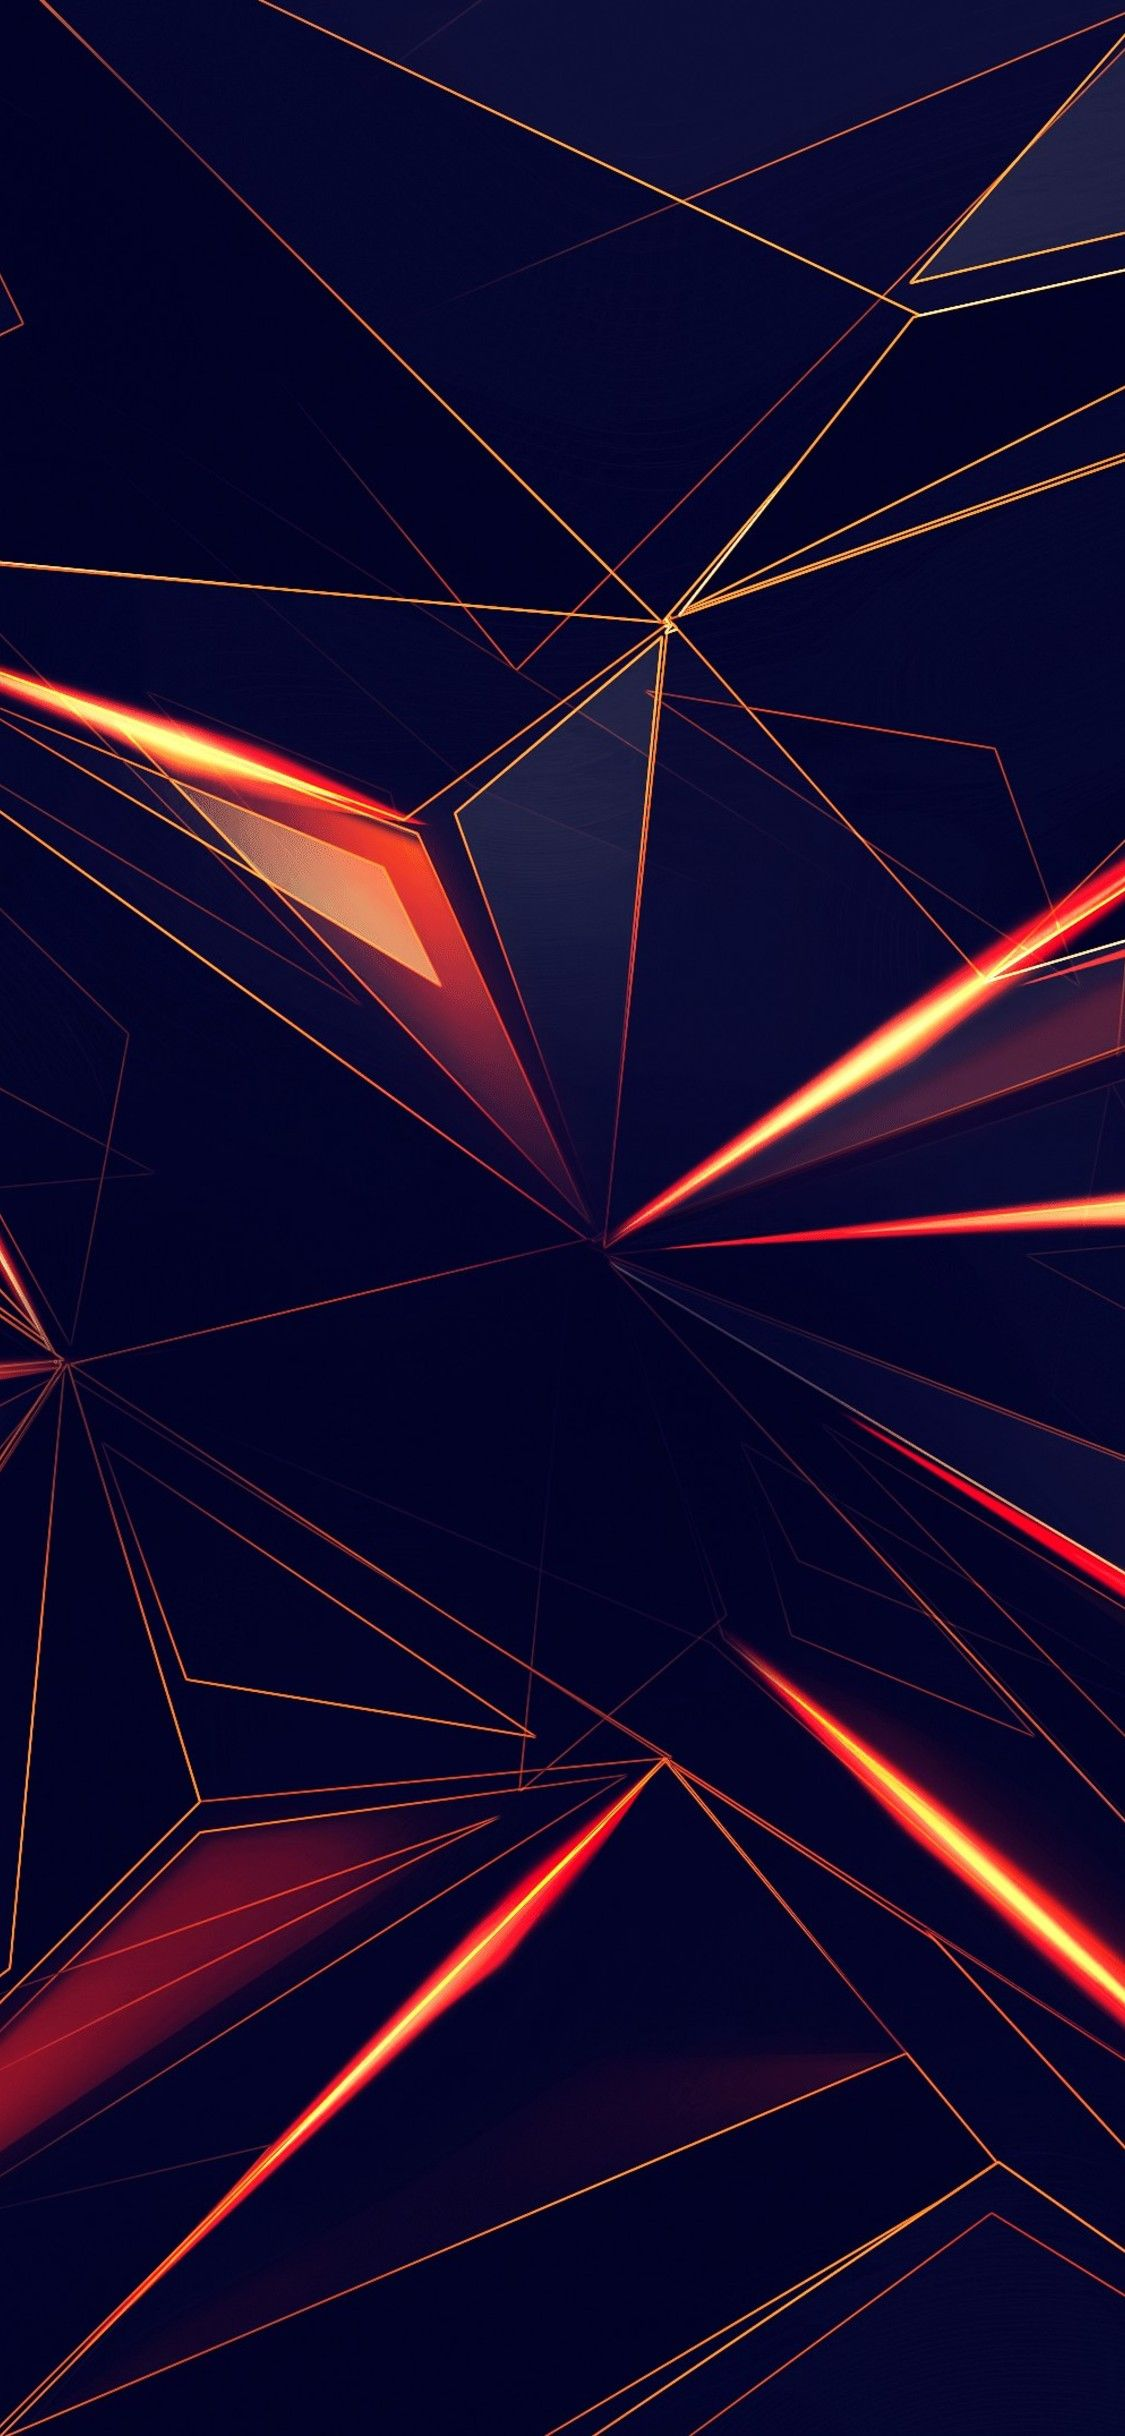 3d Shapes Abstract Lines 4k In 1125x2436 Resolution (With